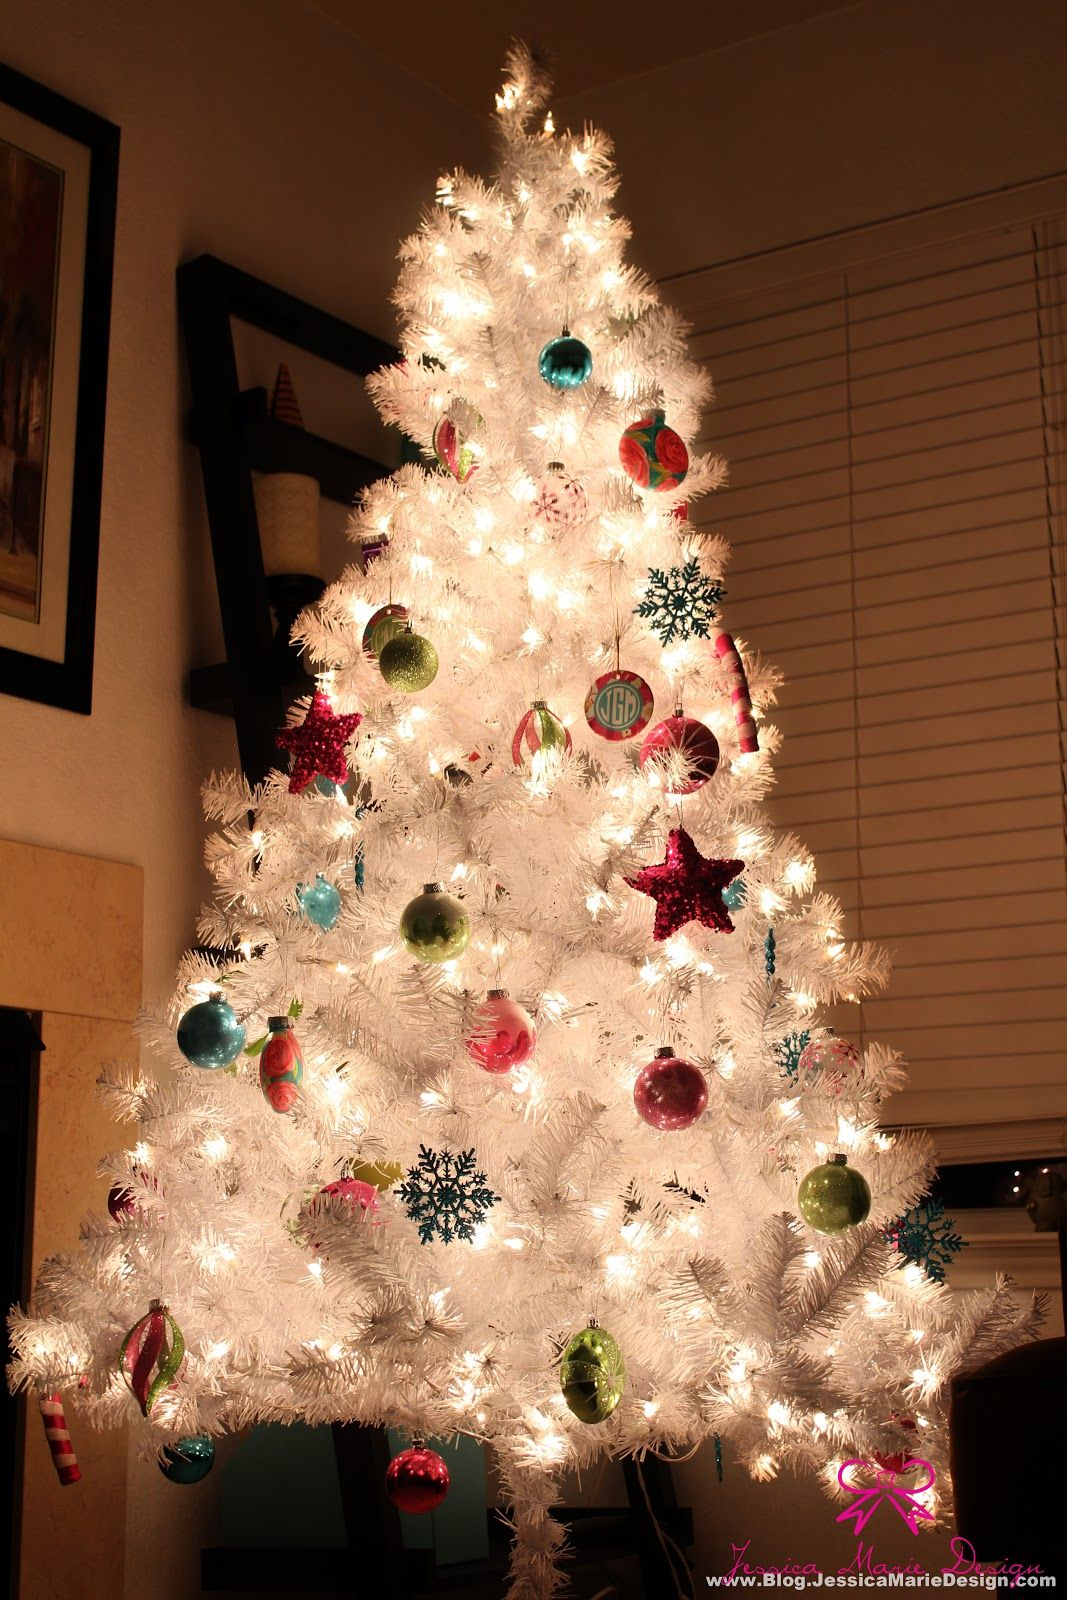 My Christmas Tree!